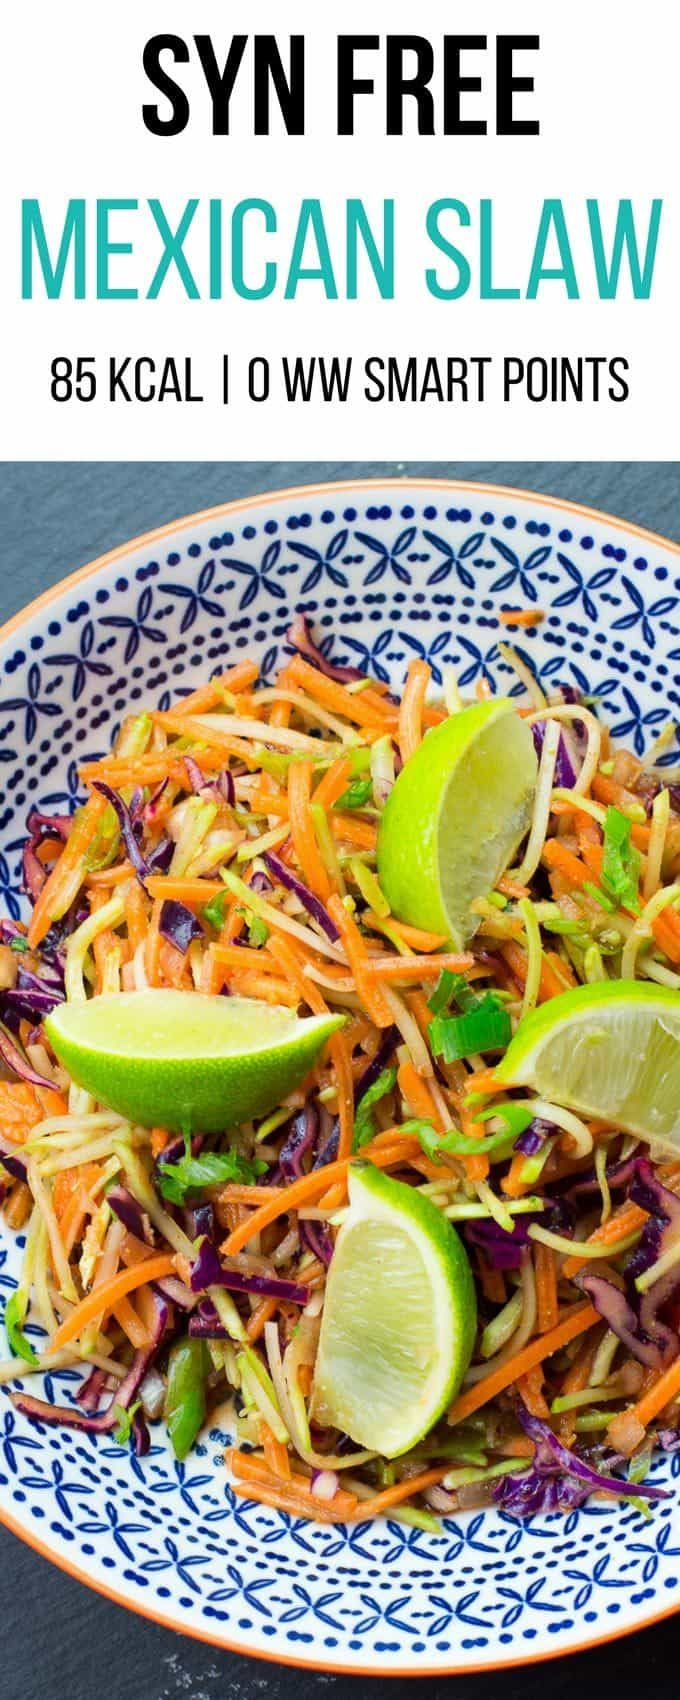 Syn Free Mexican Slaw | Slimming World | 0 Weight Watchers Smart points | 85 Kcal per portion | Gluten Free | Vegan | Dairy Free